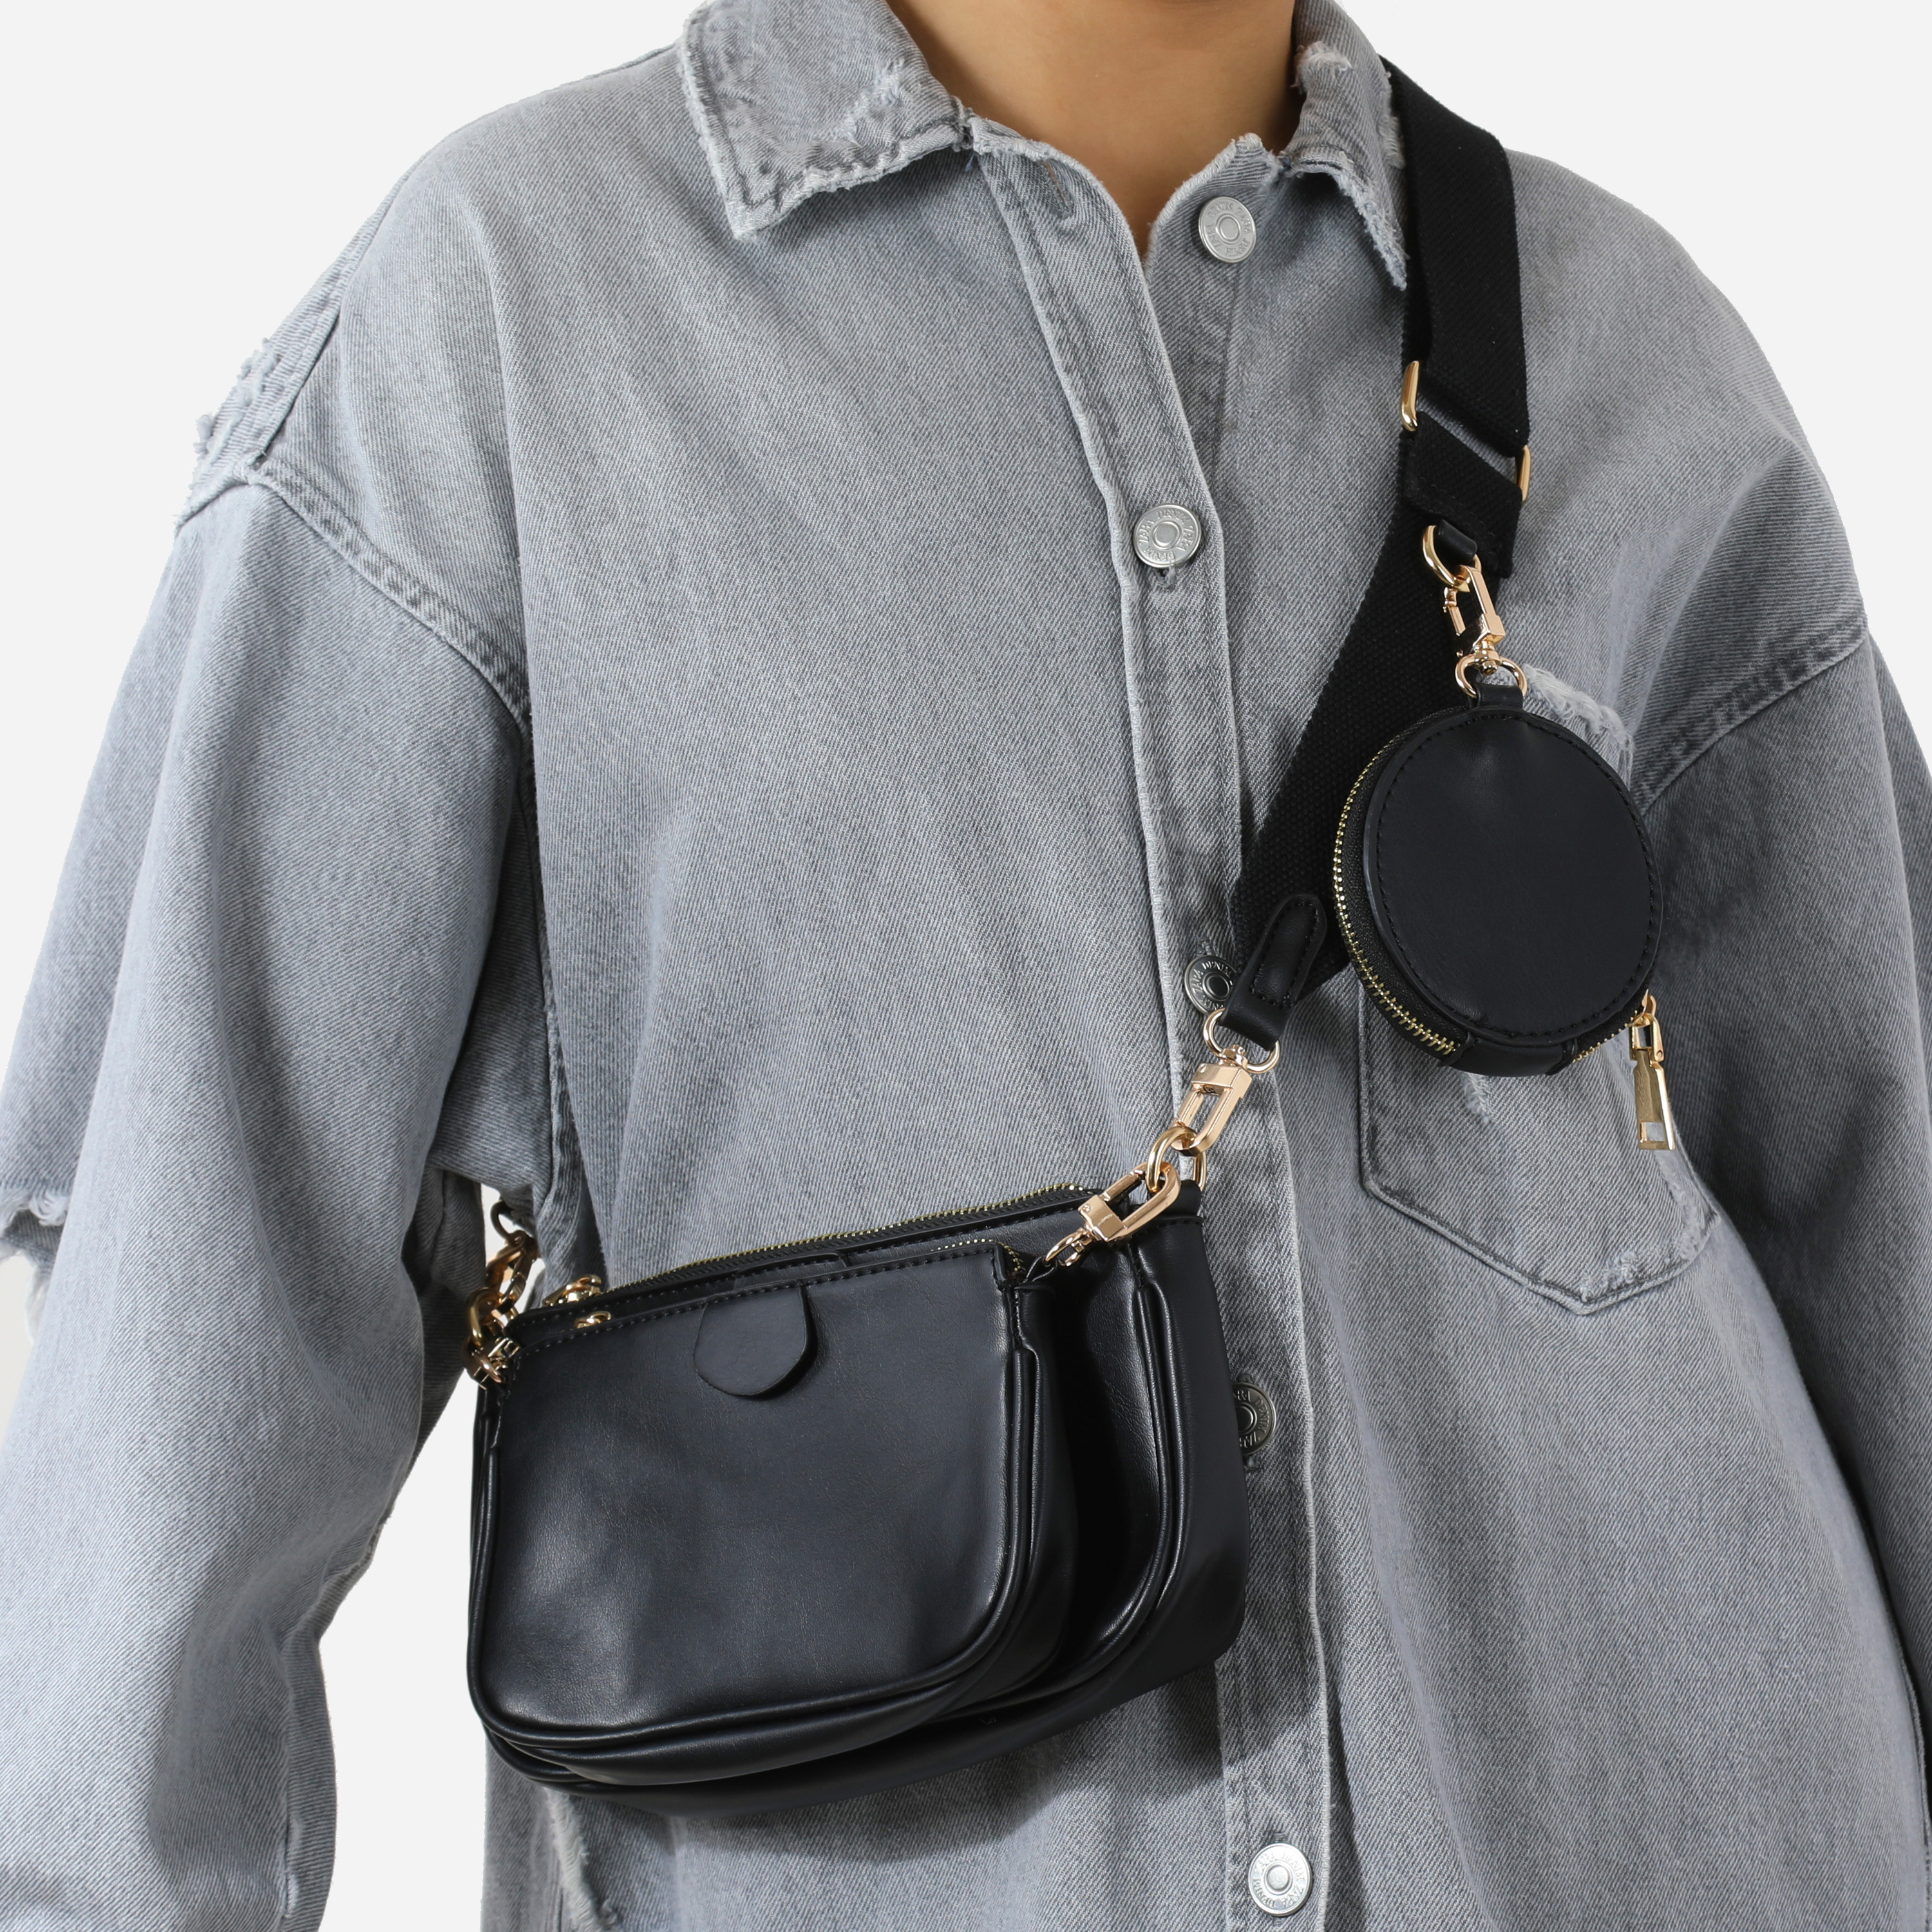 Chain & Purse Detail Cross Body Bag In Black Faux Leather